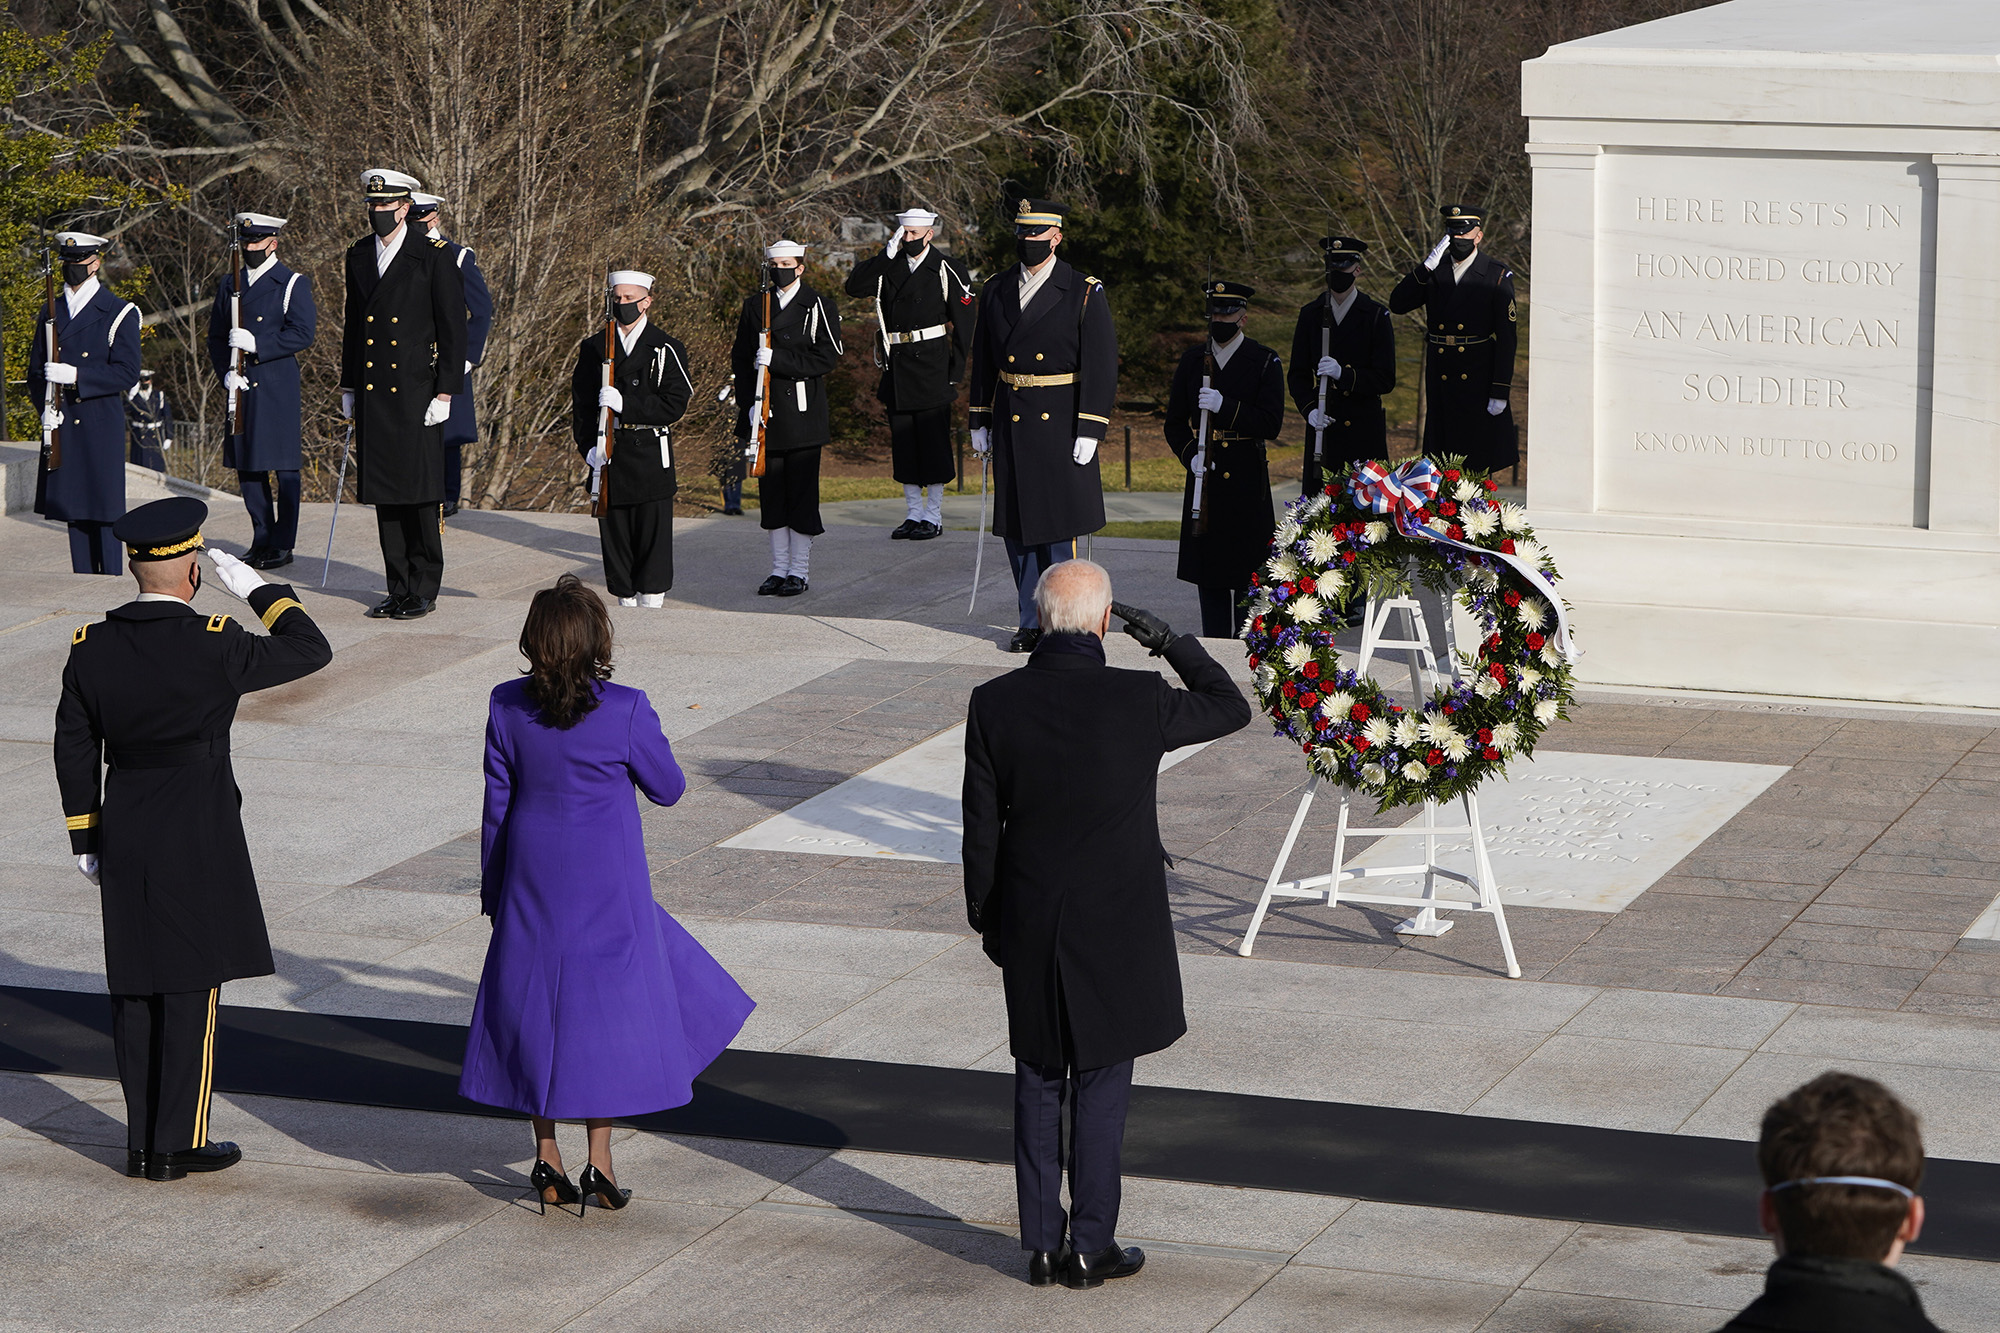 President Joe Biden, center, Vice President Kamala Harris, and Maj. Gen. Omar J. Jones salute at the Tomb of the Unknown Soldier at the Arlington National Cemetery on Jan. 20, 2021, in Arlington, Va. (Joshua Roberts-Pool/Getty Images)